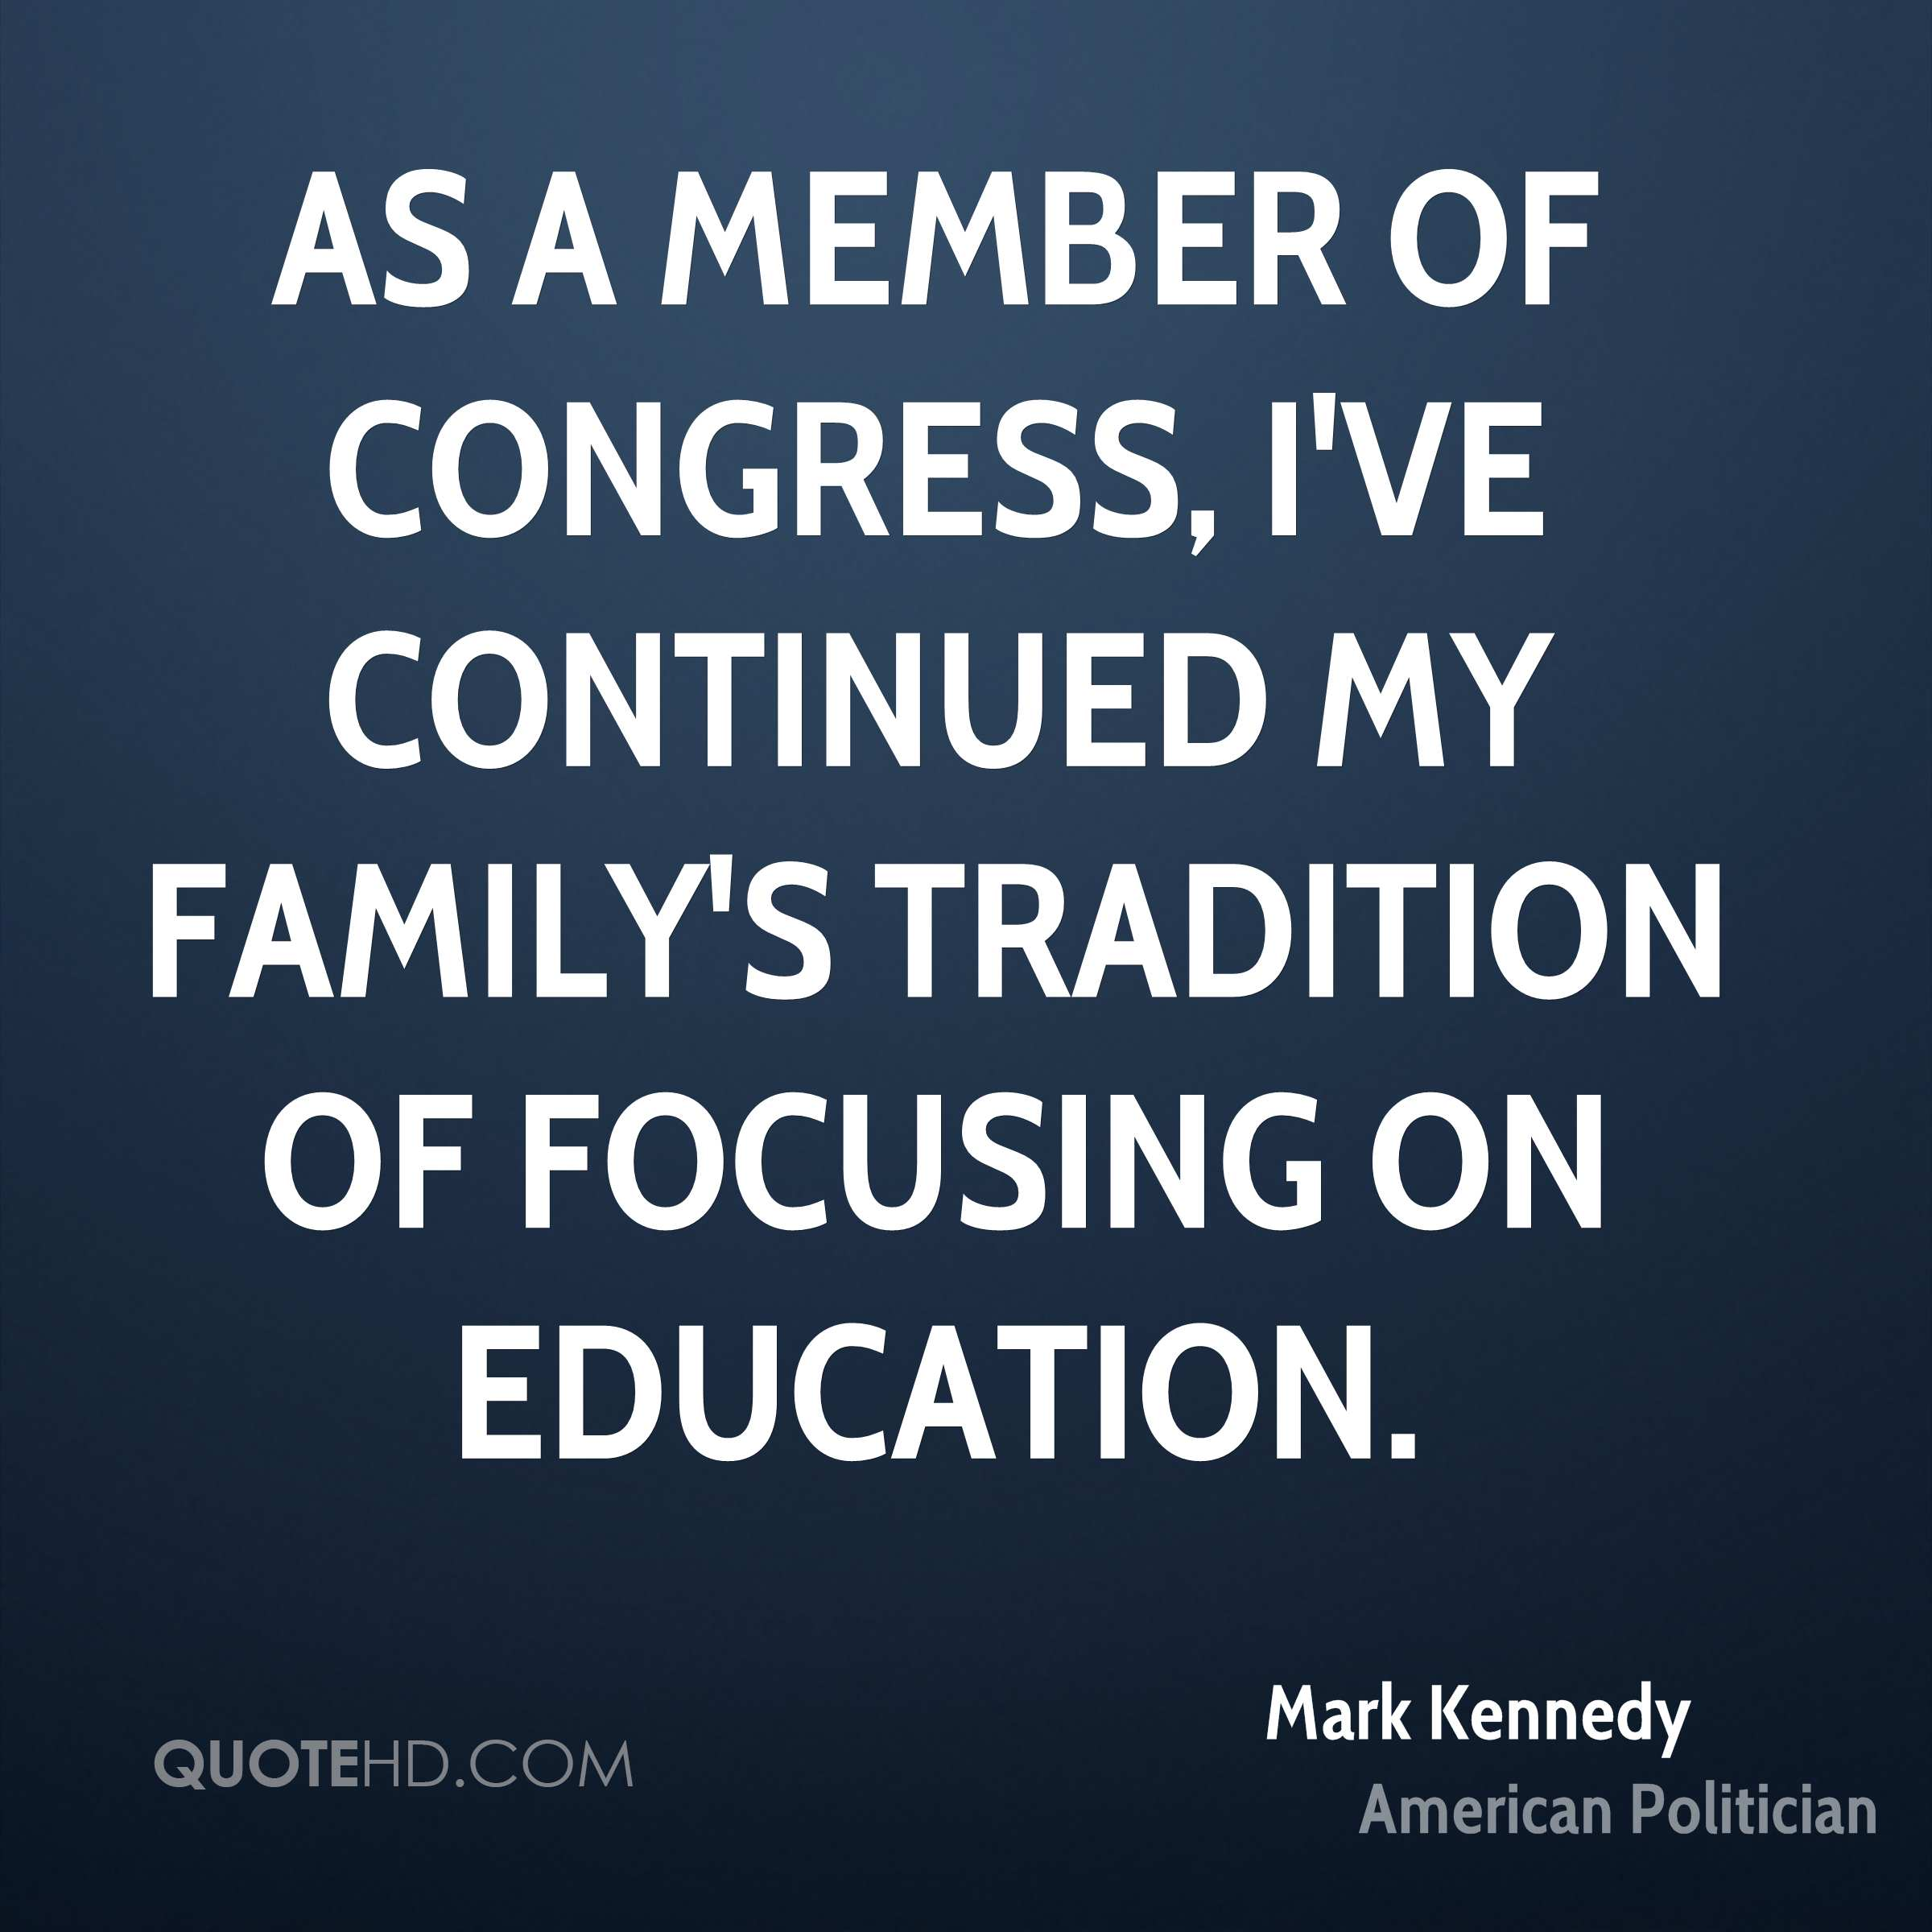 As a Member of Congress, I've continued my family's tradition of focusing on education.